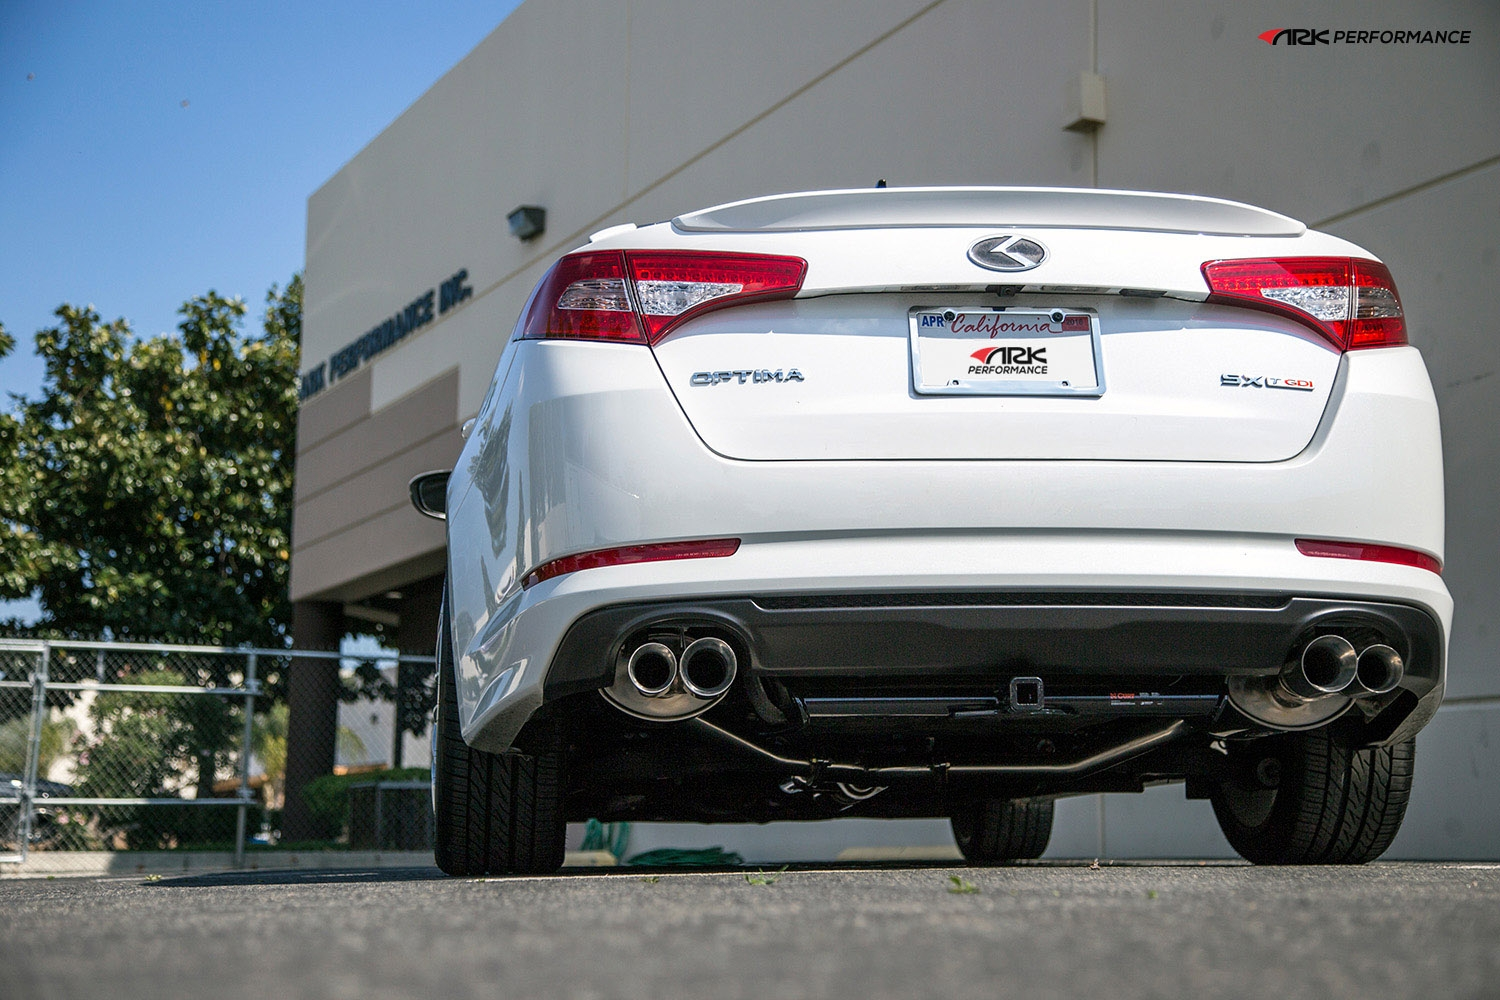 Ark Performance Stainless Steel DT-S Cat-Back Exhaust System 2.25 to 2.5in Pipe w/ 3.5 / 2.5 Polished Dual Tip, Dual Exit - Kia Optima / K5 11-13 2.0T, 2.4L I4